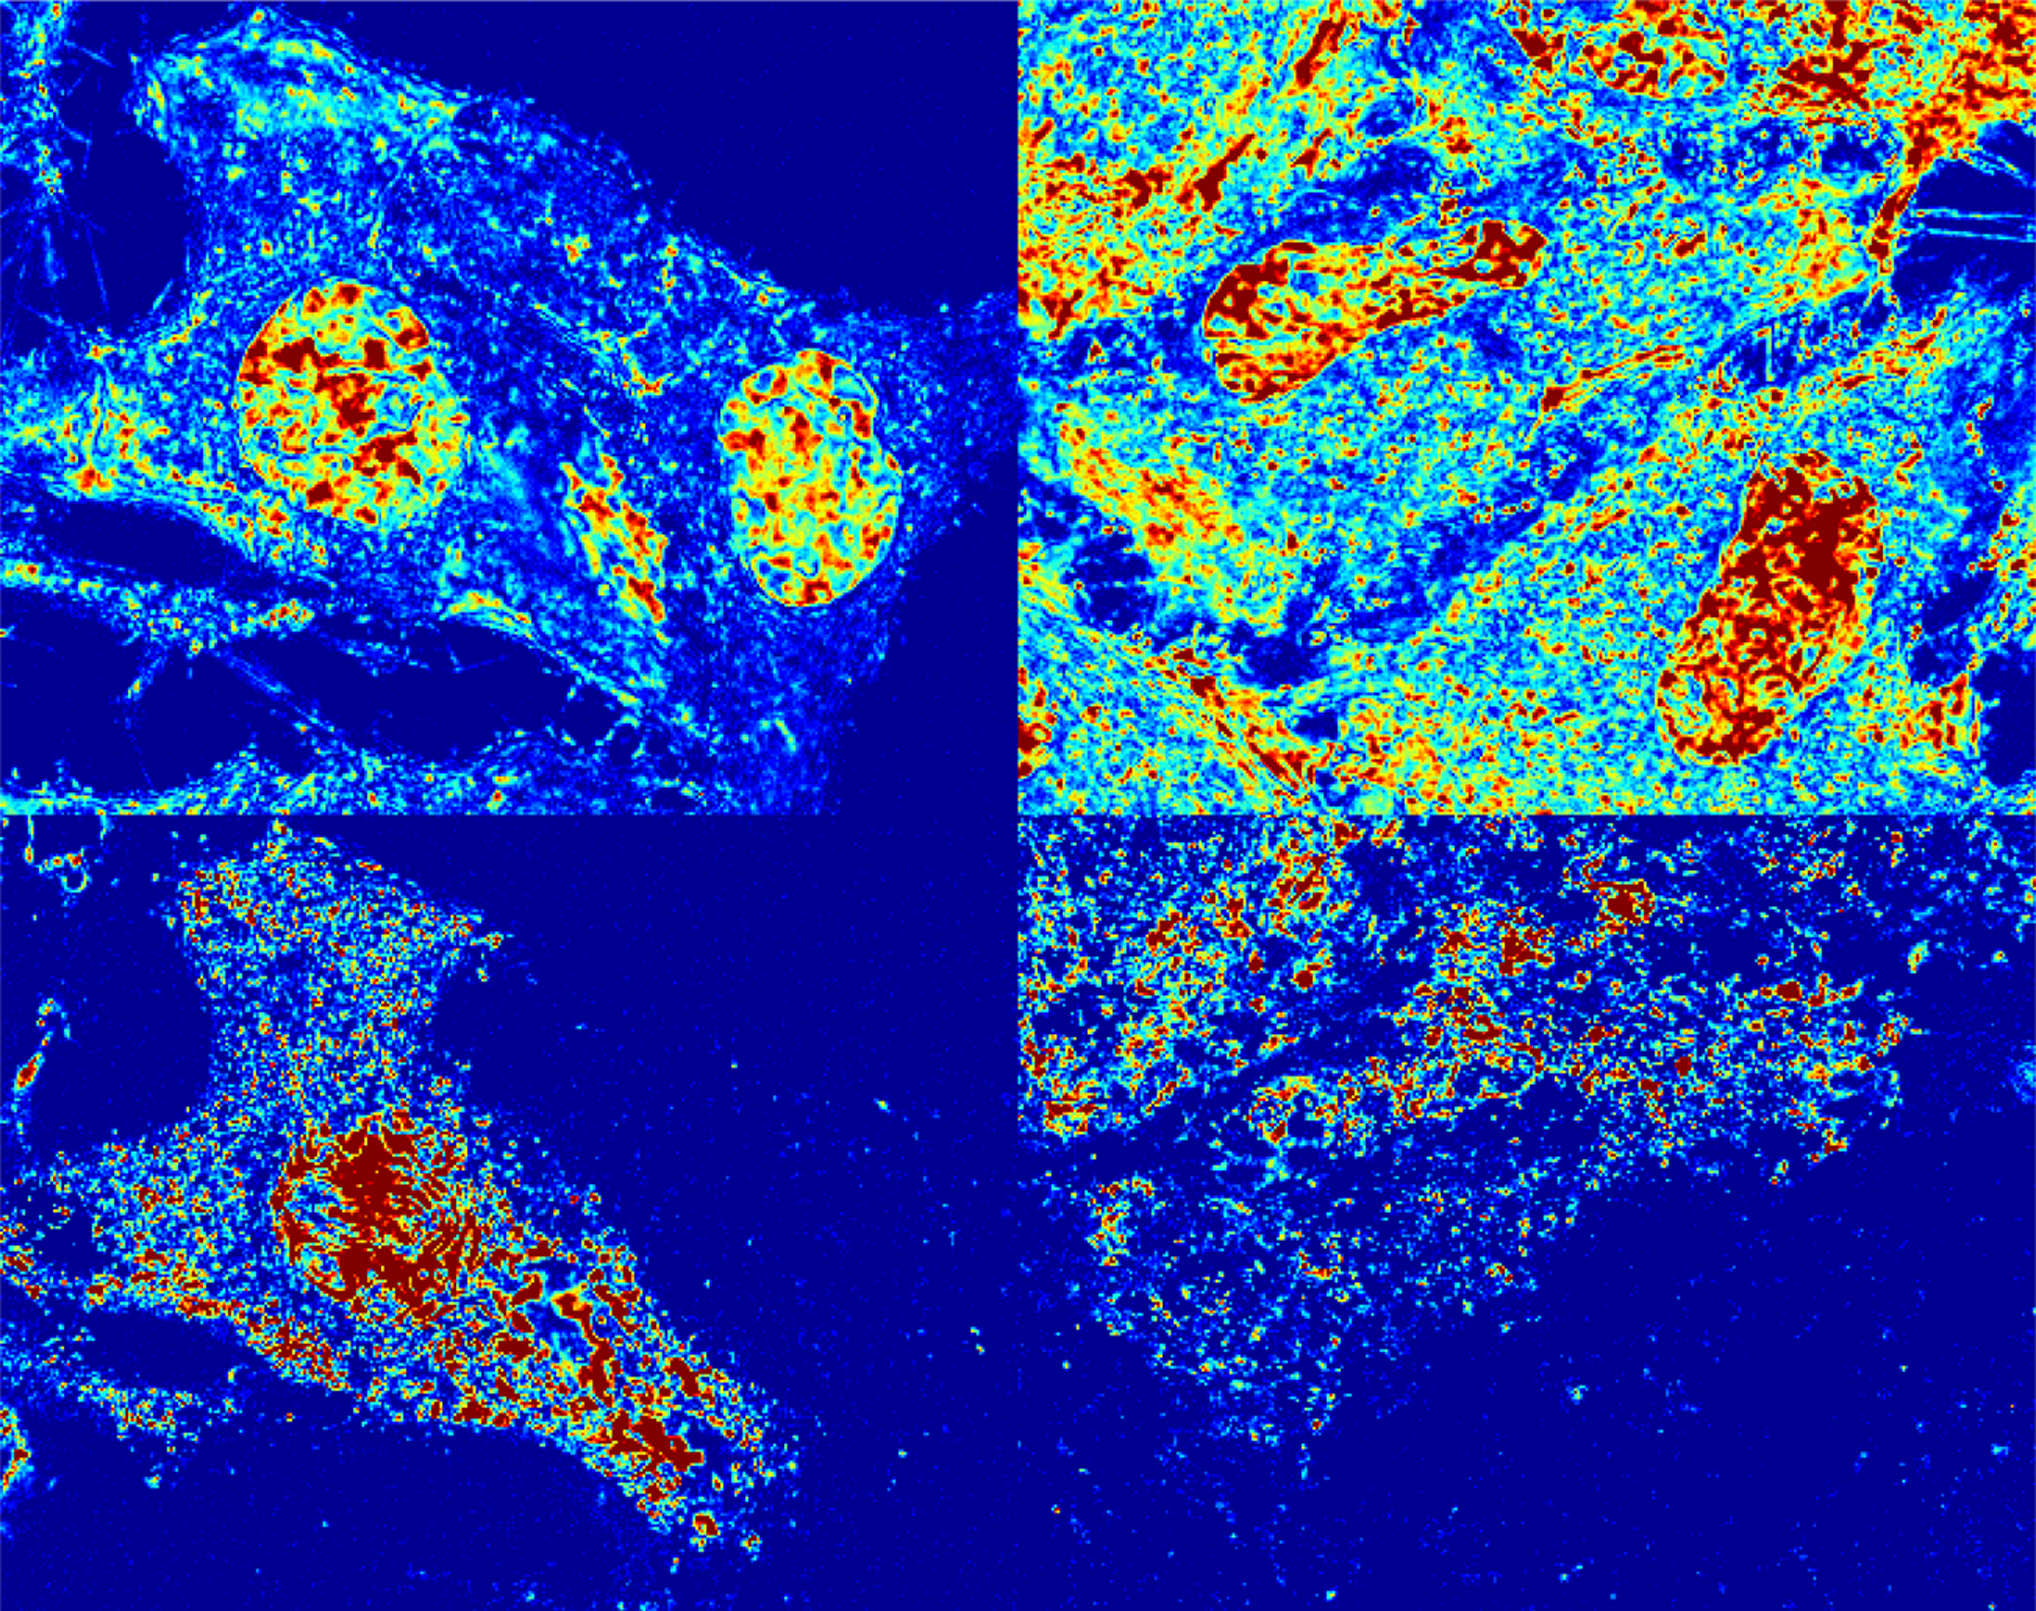 Four blocks of cancer cell representations on blue background